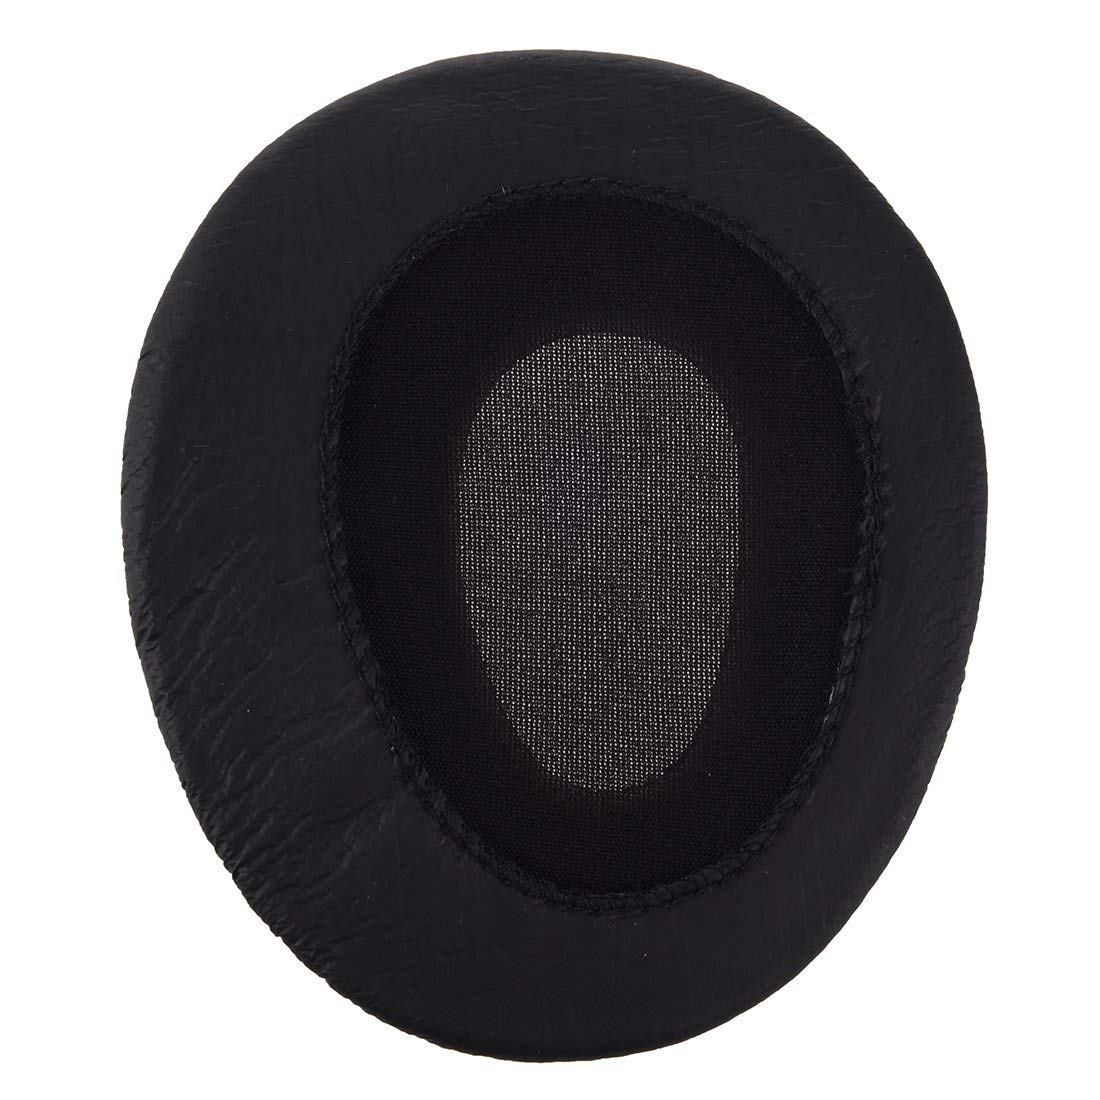 Ear Pads-TOOGOO(R) Ear pads Headset Pads Replacement for Sony MDR-V600 MDR-V900